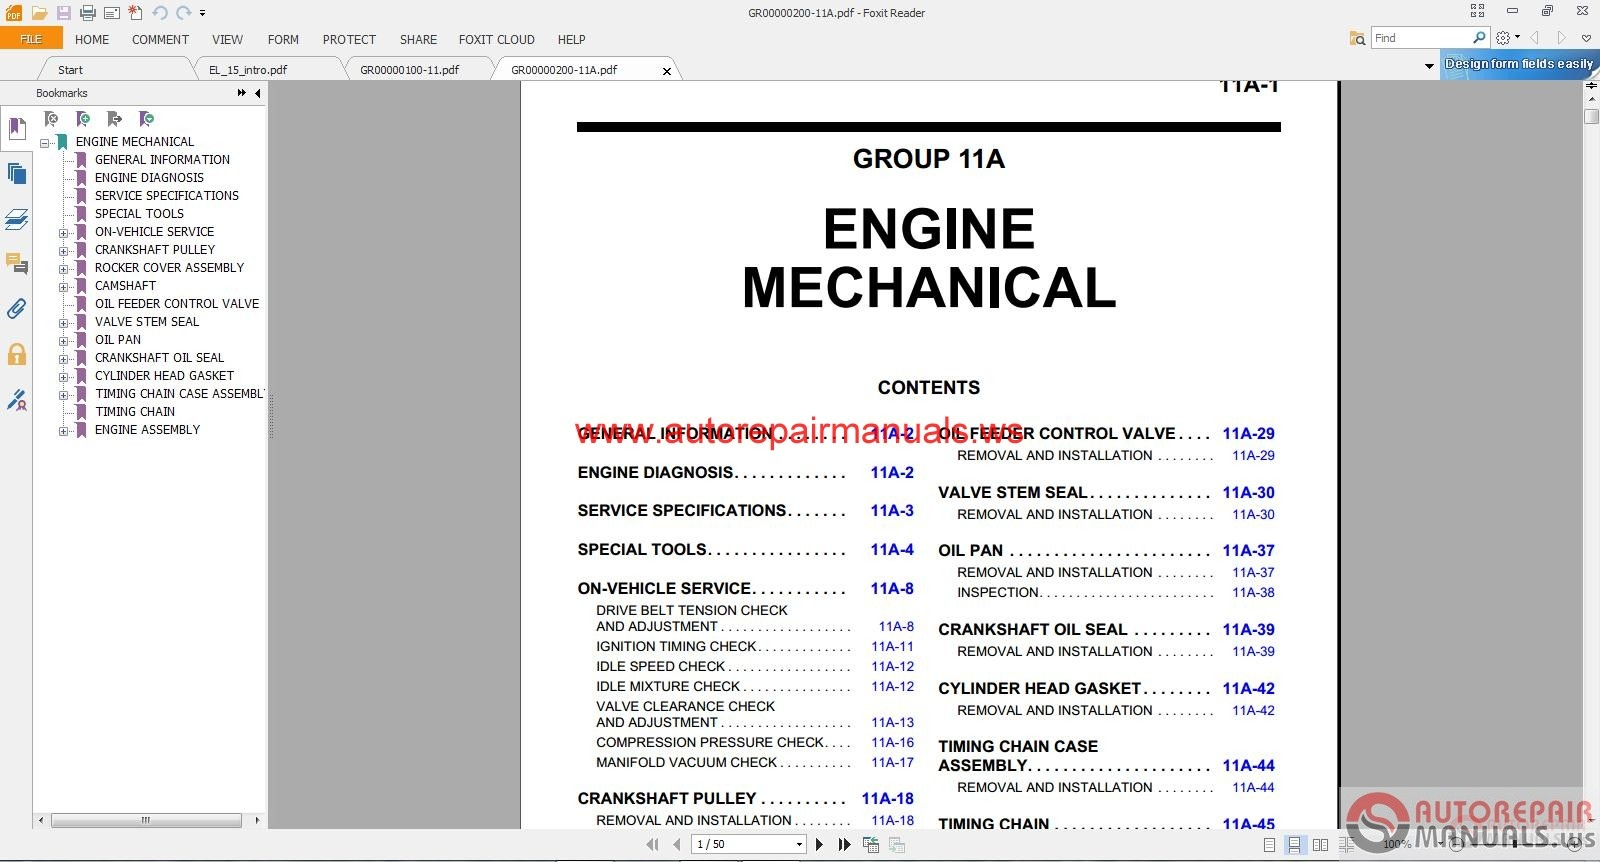 Daihatsu Engine Wiring Diagram Trusted Diagrams Charade Stereo Mitsubishi Mirage 2015 Workshop Manual Auto Repair Kohler Chevrolet